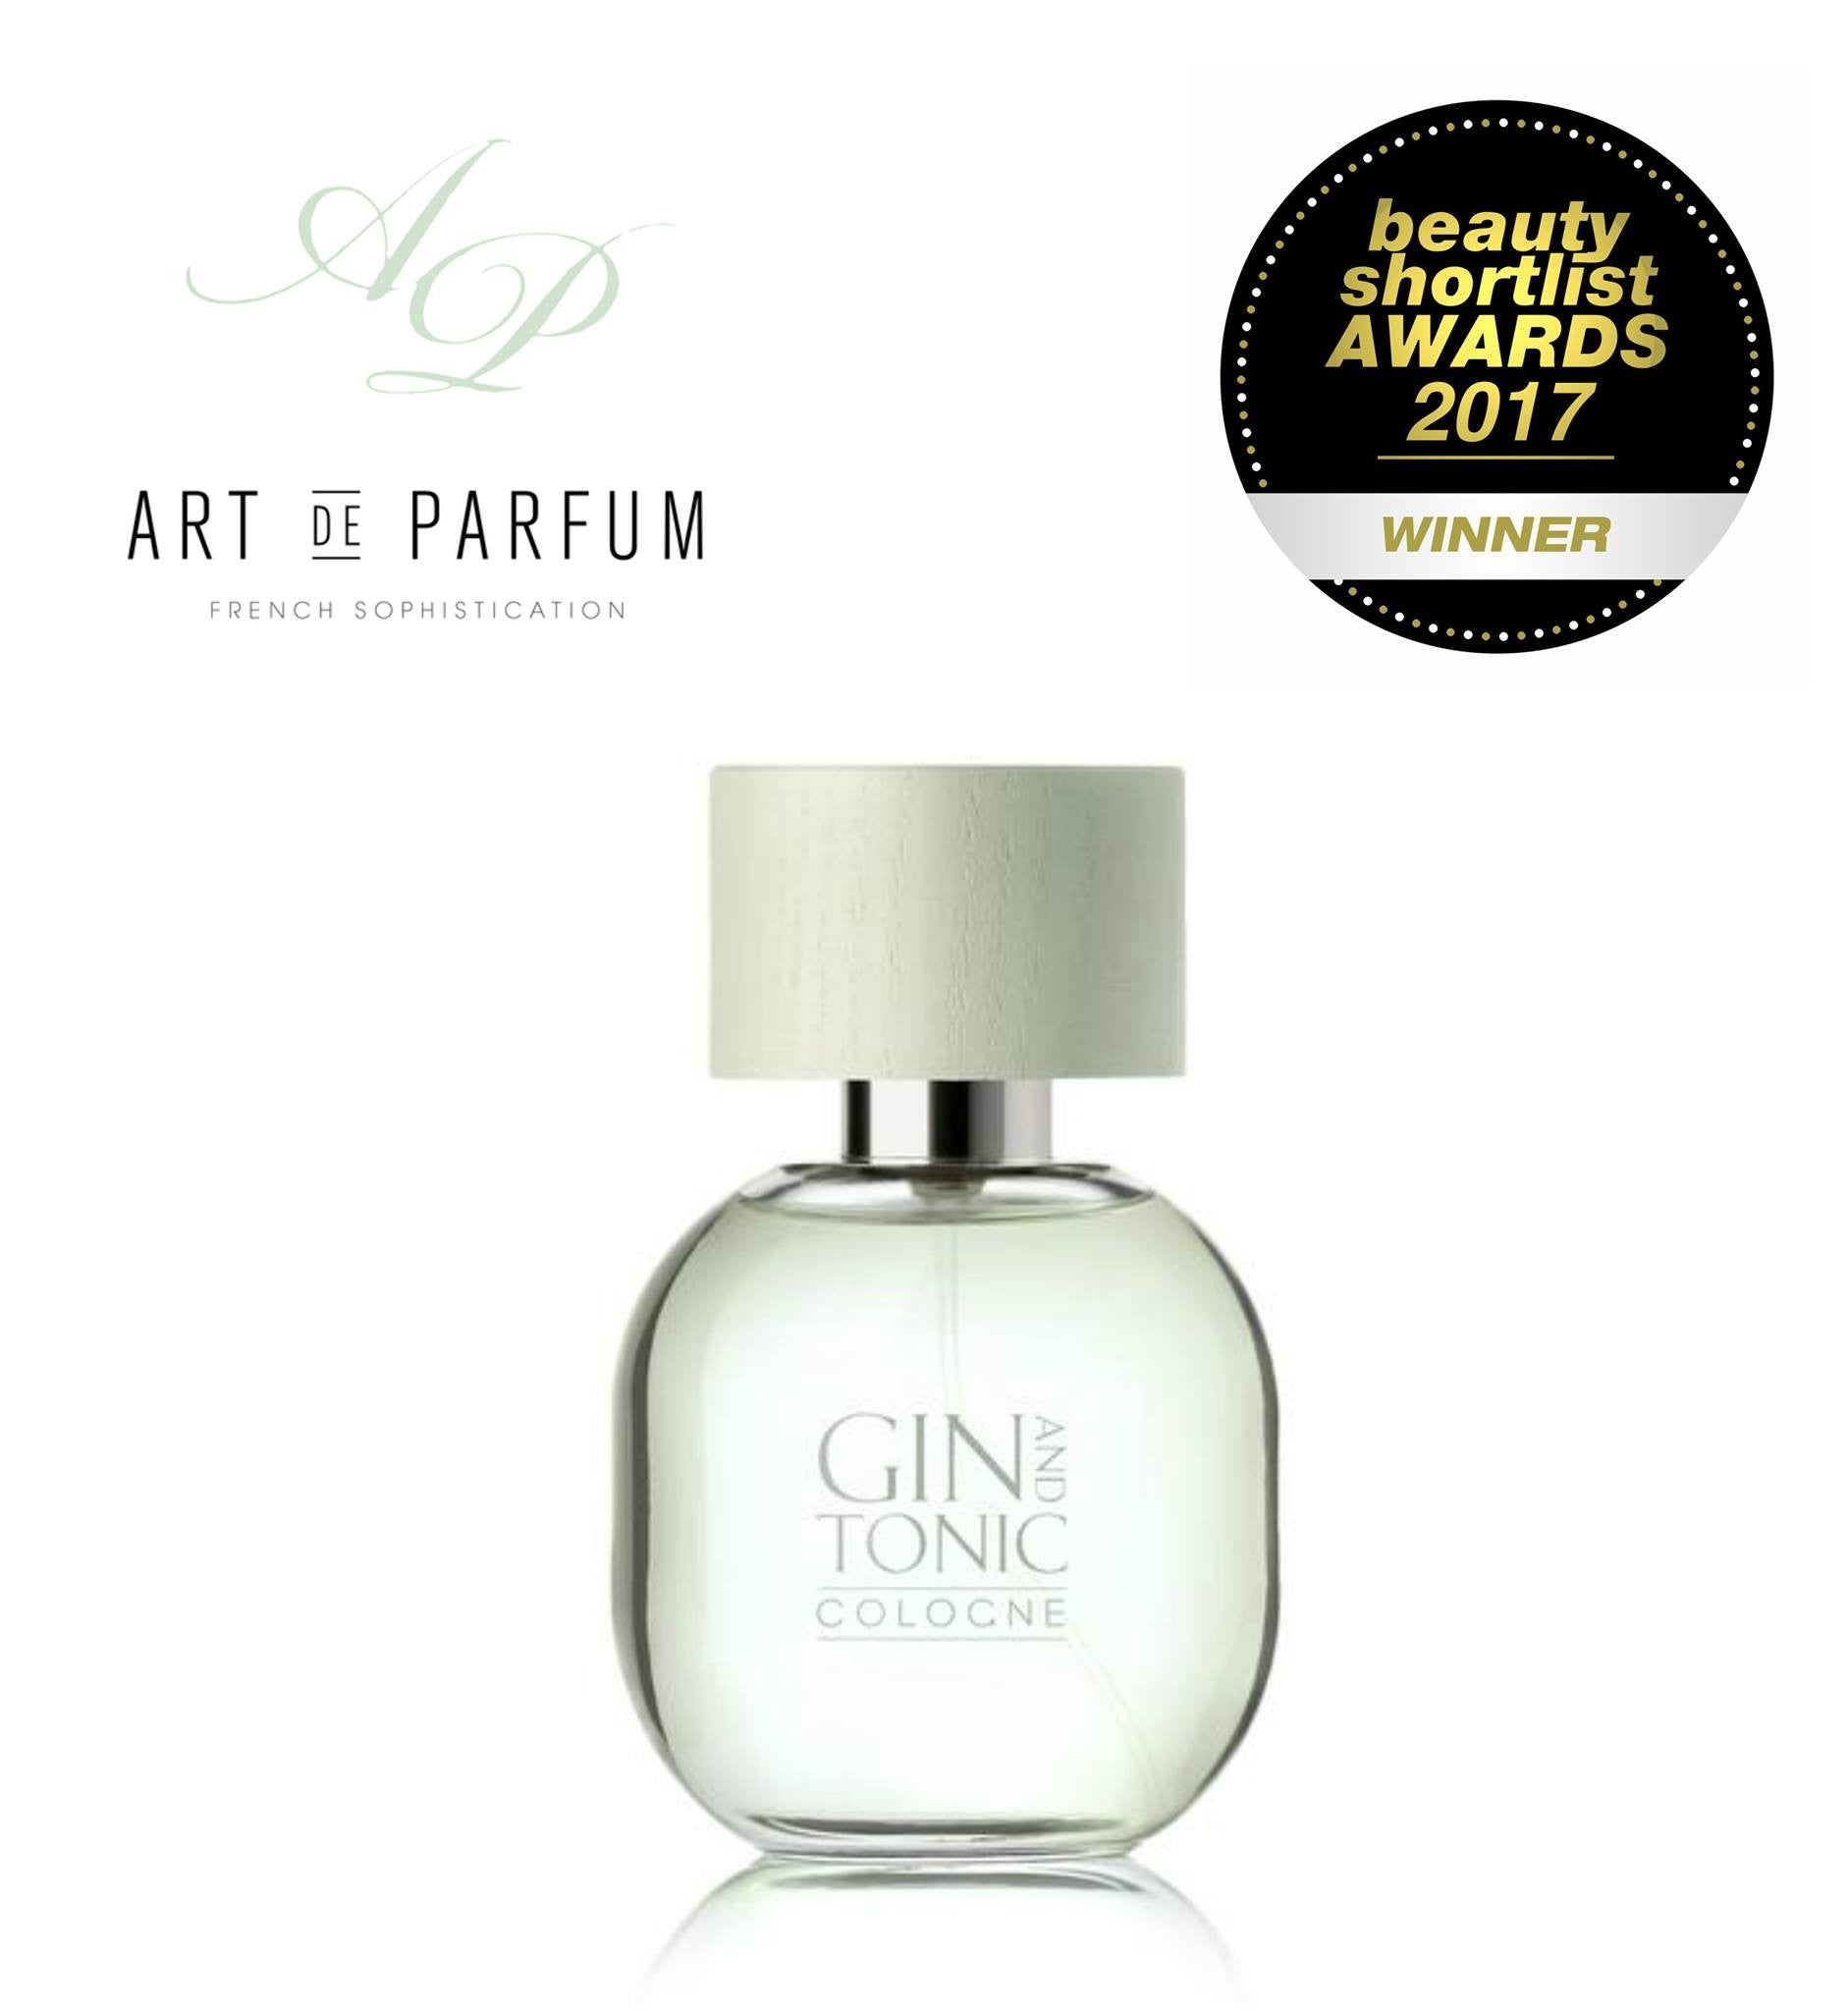 We are Beauty Shortlist's BEST FRAGRANCE WINNER for 2017!